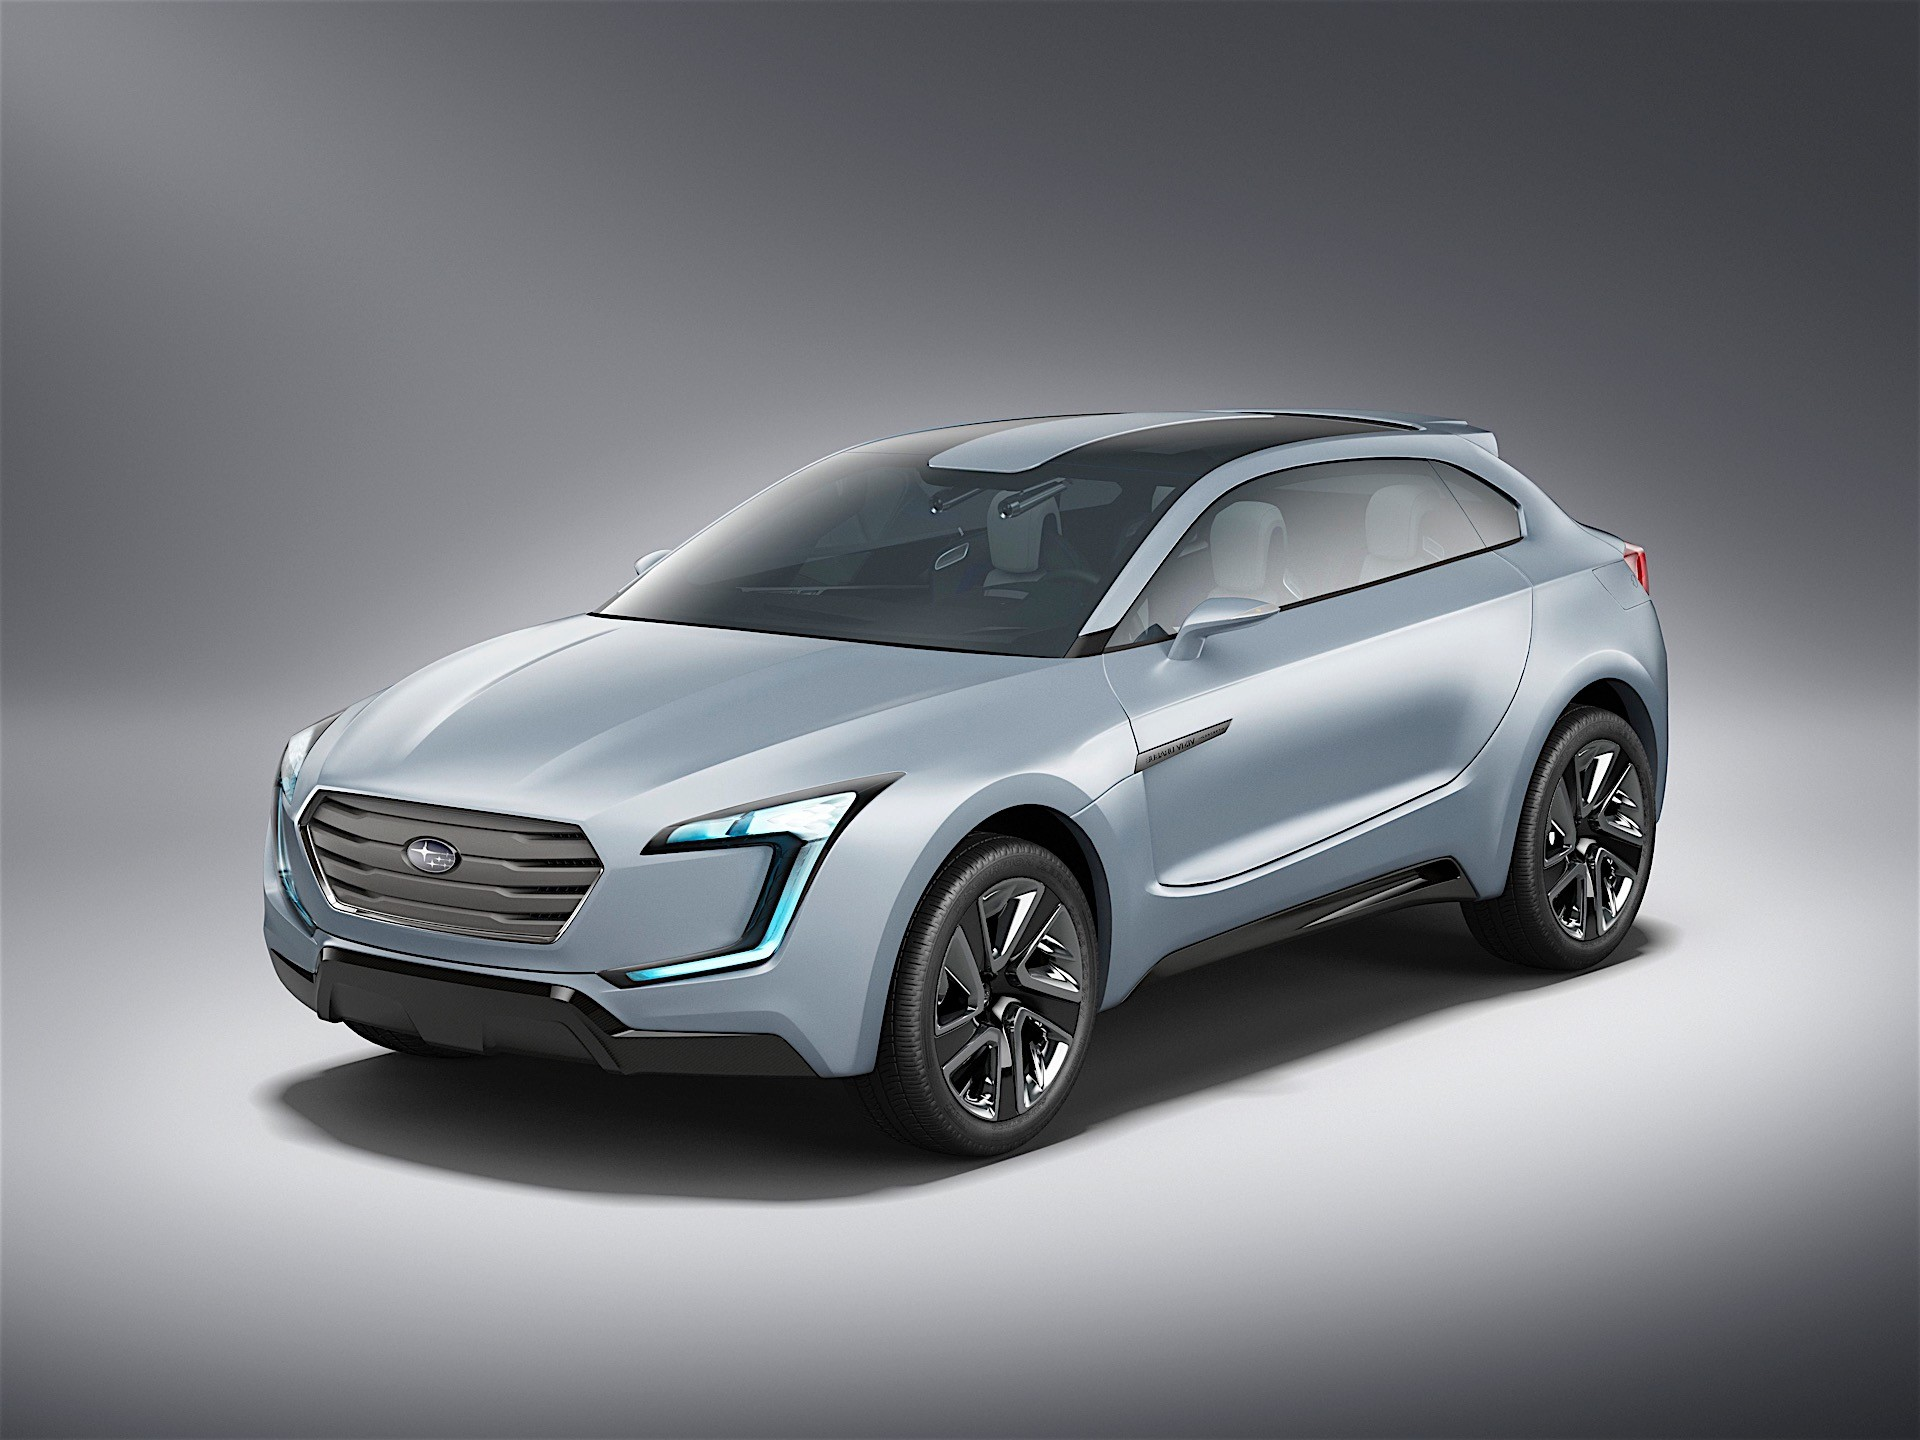 subaru reportedly planning to launch all-electric crossover by 2021